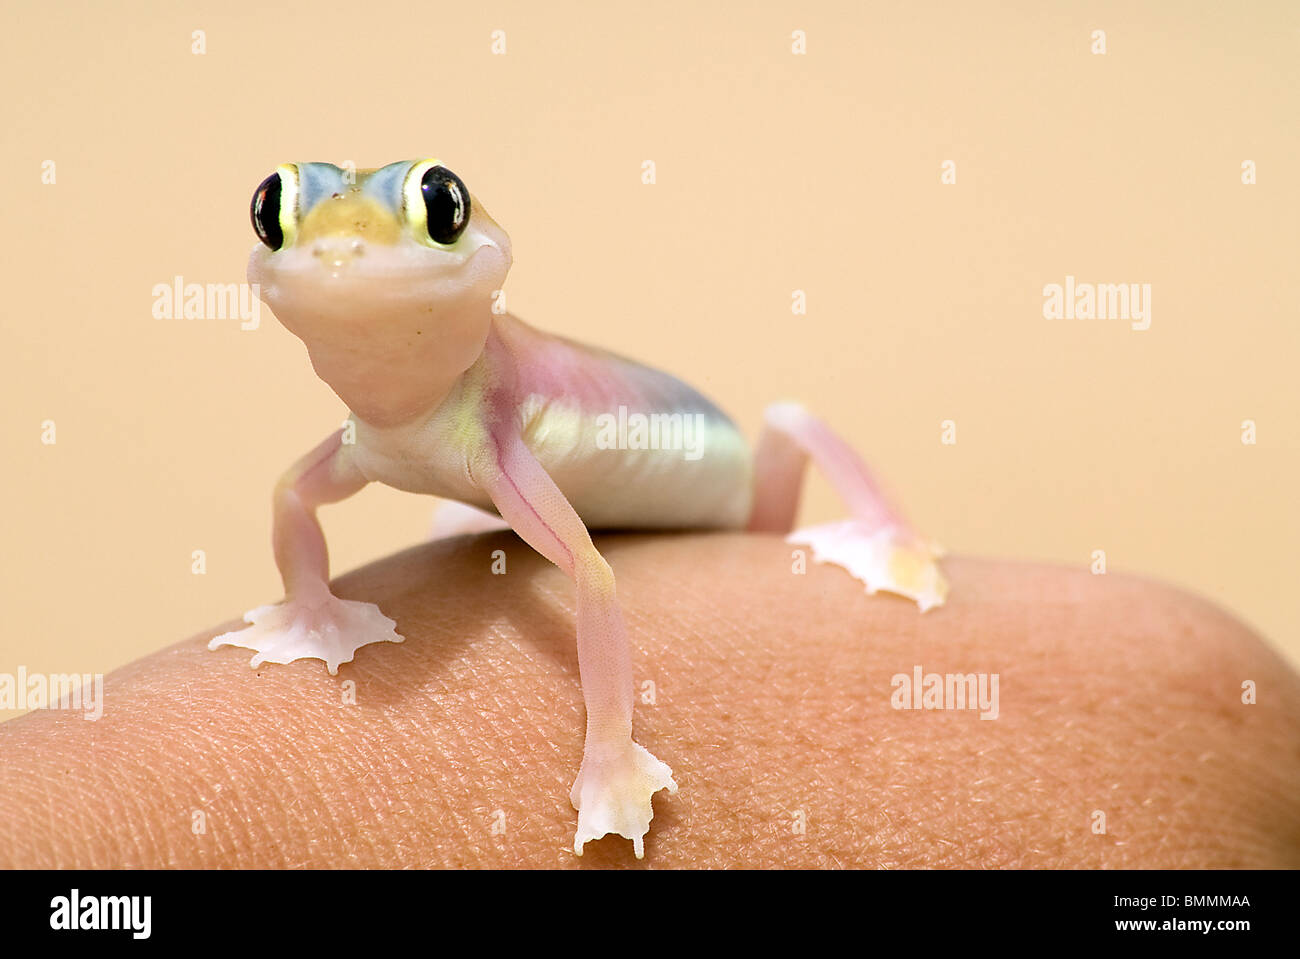 Close-up view of Web-Footed Gecko, Namibia Stock Photo